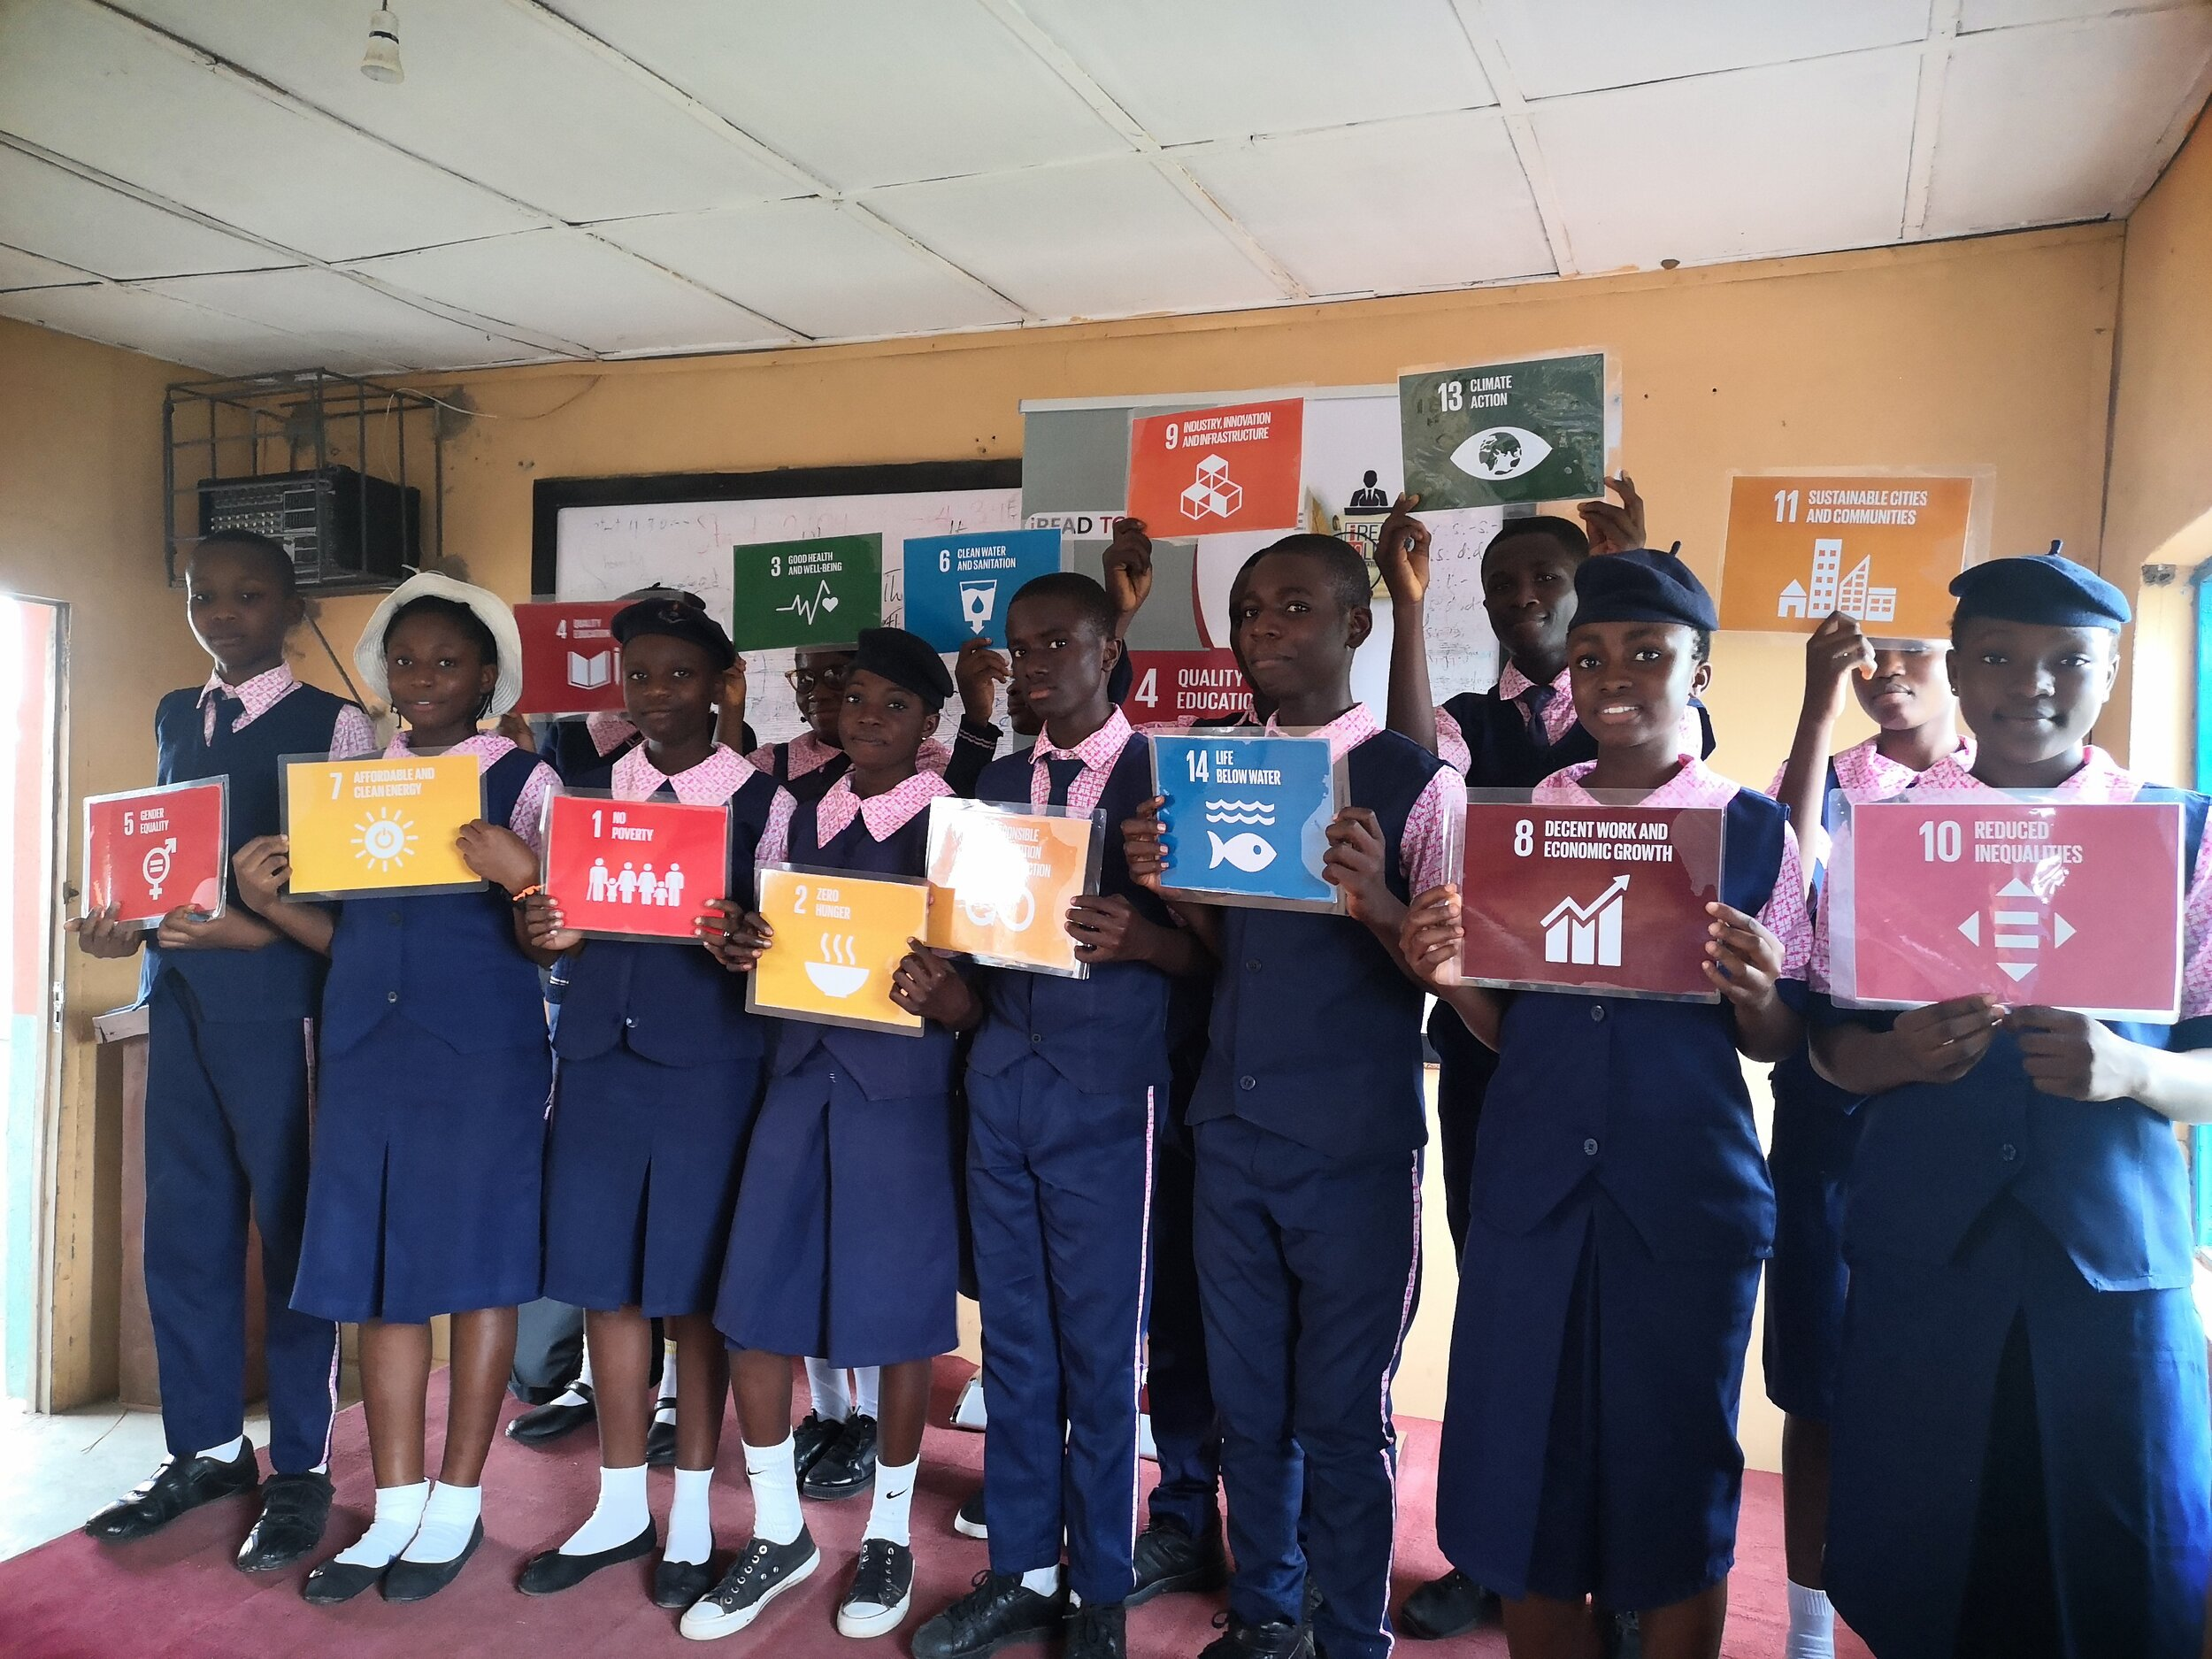 Student leaders pose with the SDGs Cards and ready to lead their peers in localizing the Global Goals.